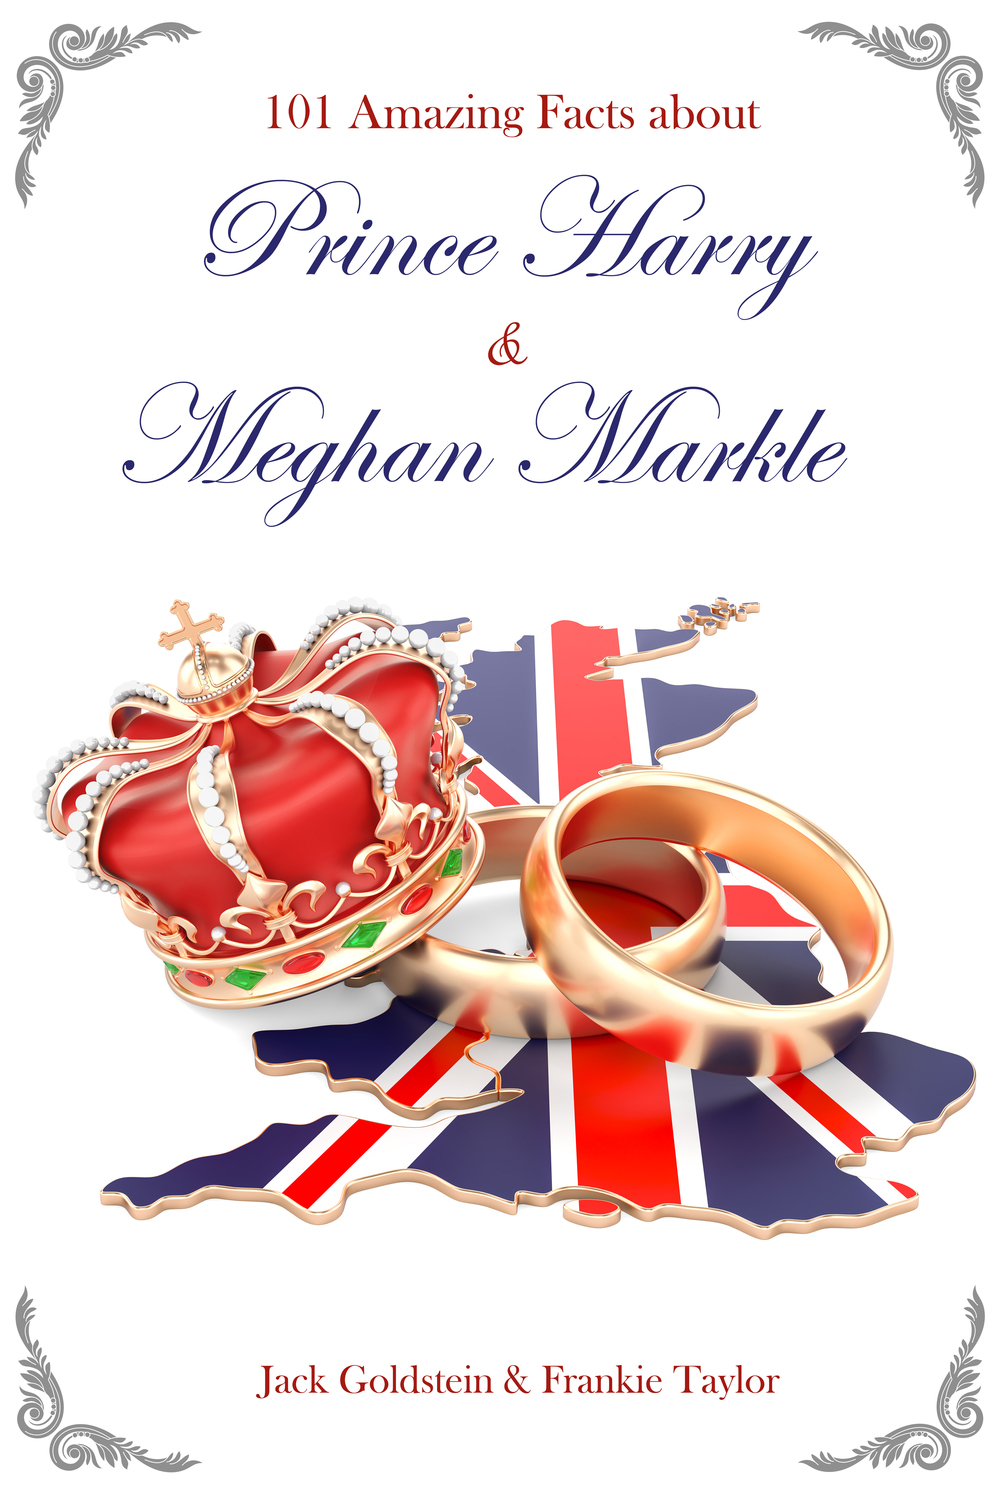 Goldstein, Jack - 101 Amazing Facts about Prince Harry and Meghan Markle, ebook